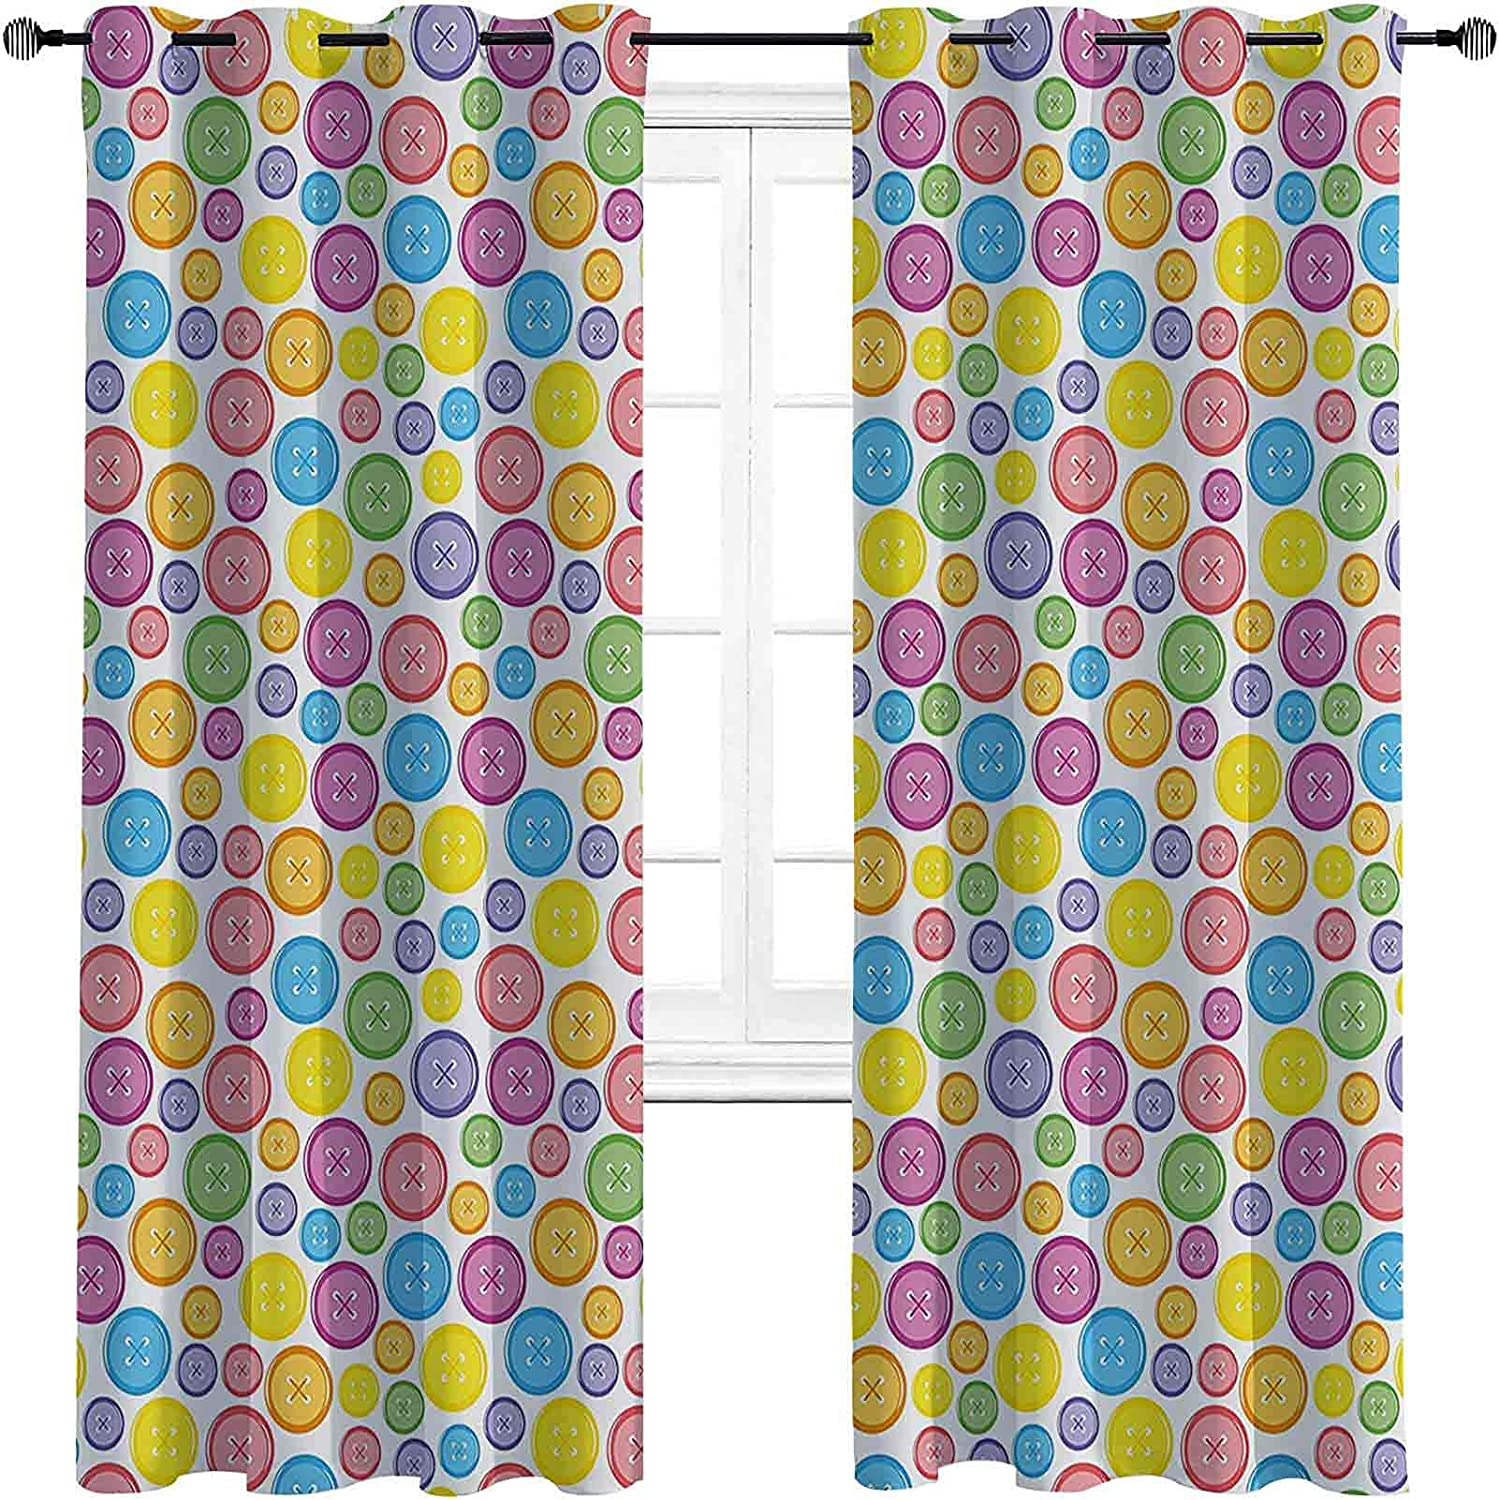 Modern Bedroom Blackout Curtains Shaped Patter Max 85% NEW before selling ☆ OFF Circular Buttons